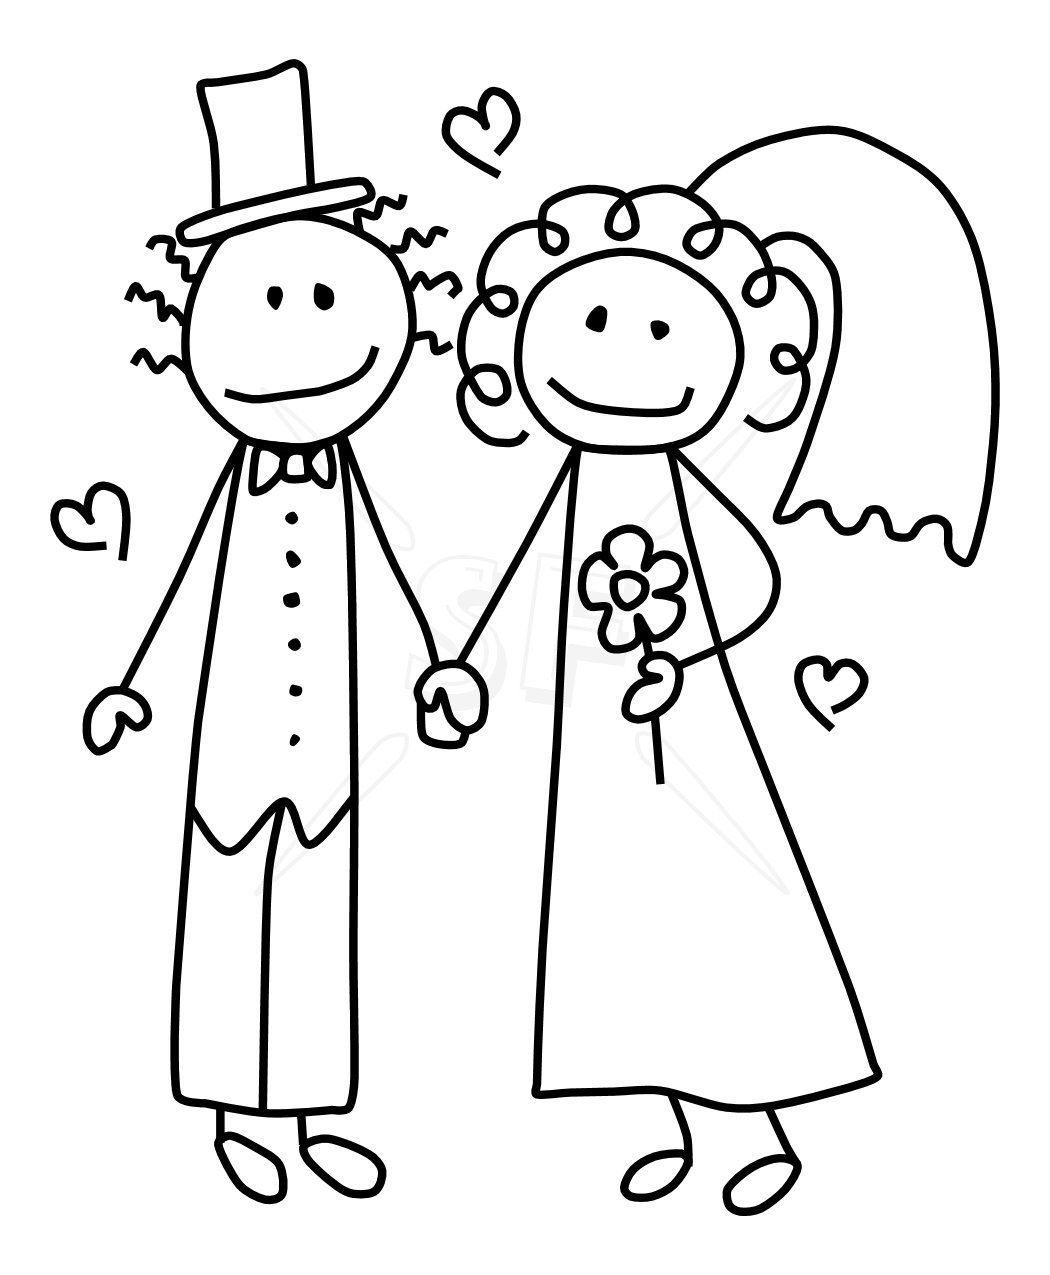 Stick bride and groom clipart banner royalty free stock Bride And Groom Stick Figure Clip Art | 4 Sis | Bride ... banner royalty free stock